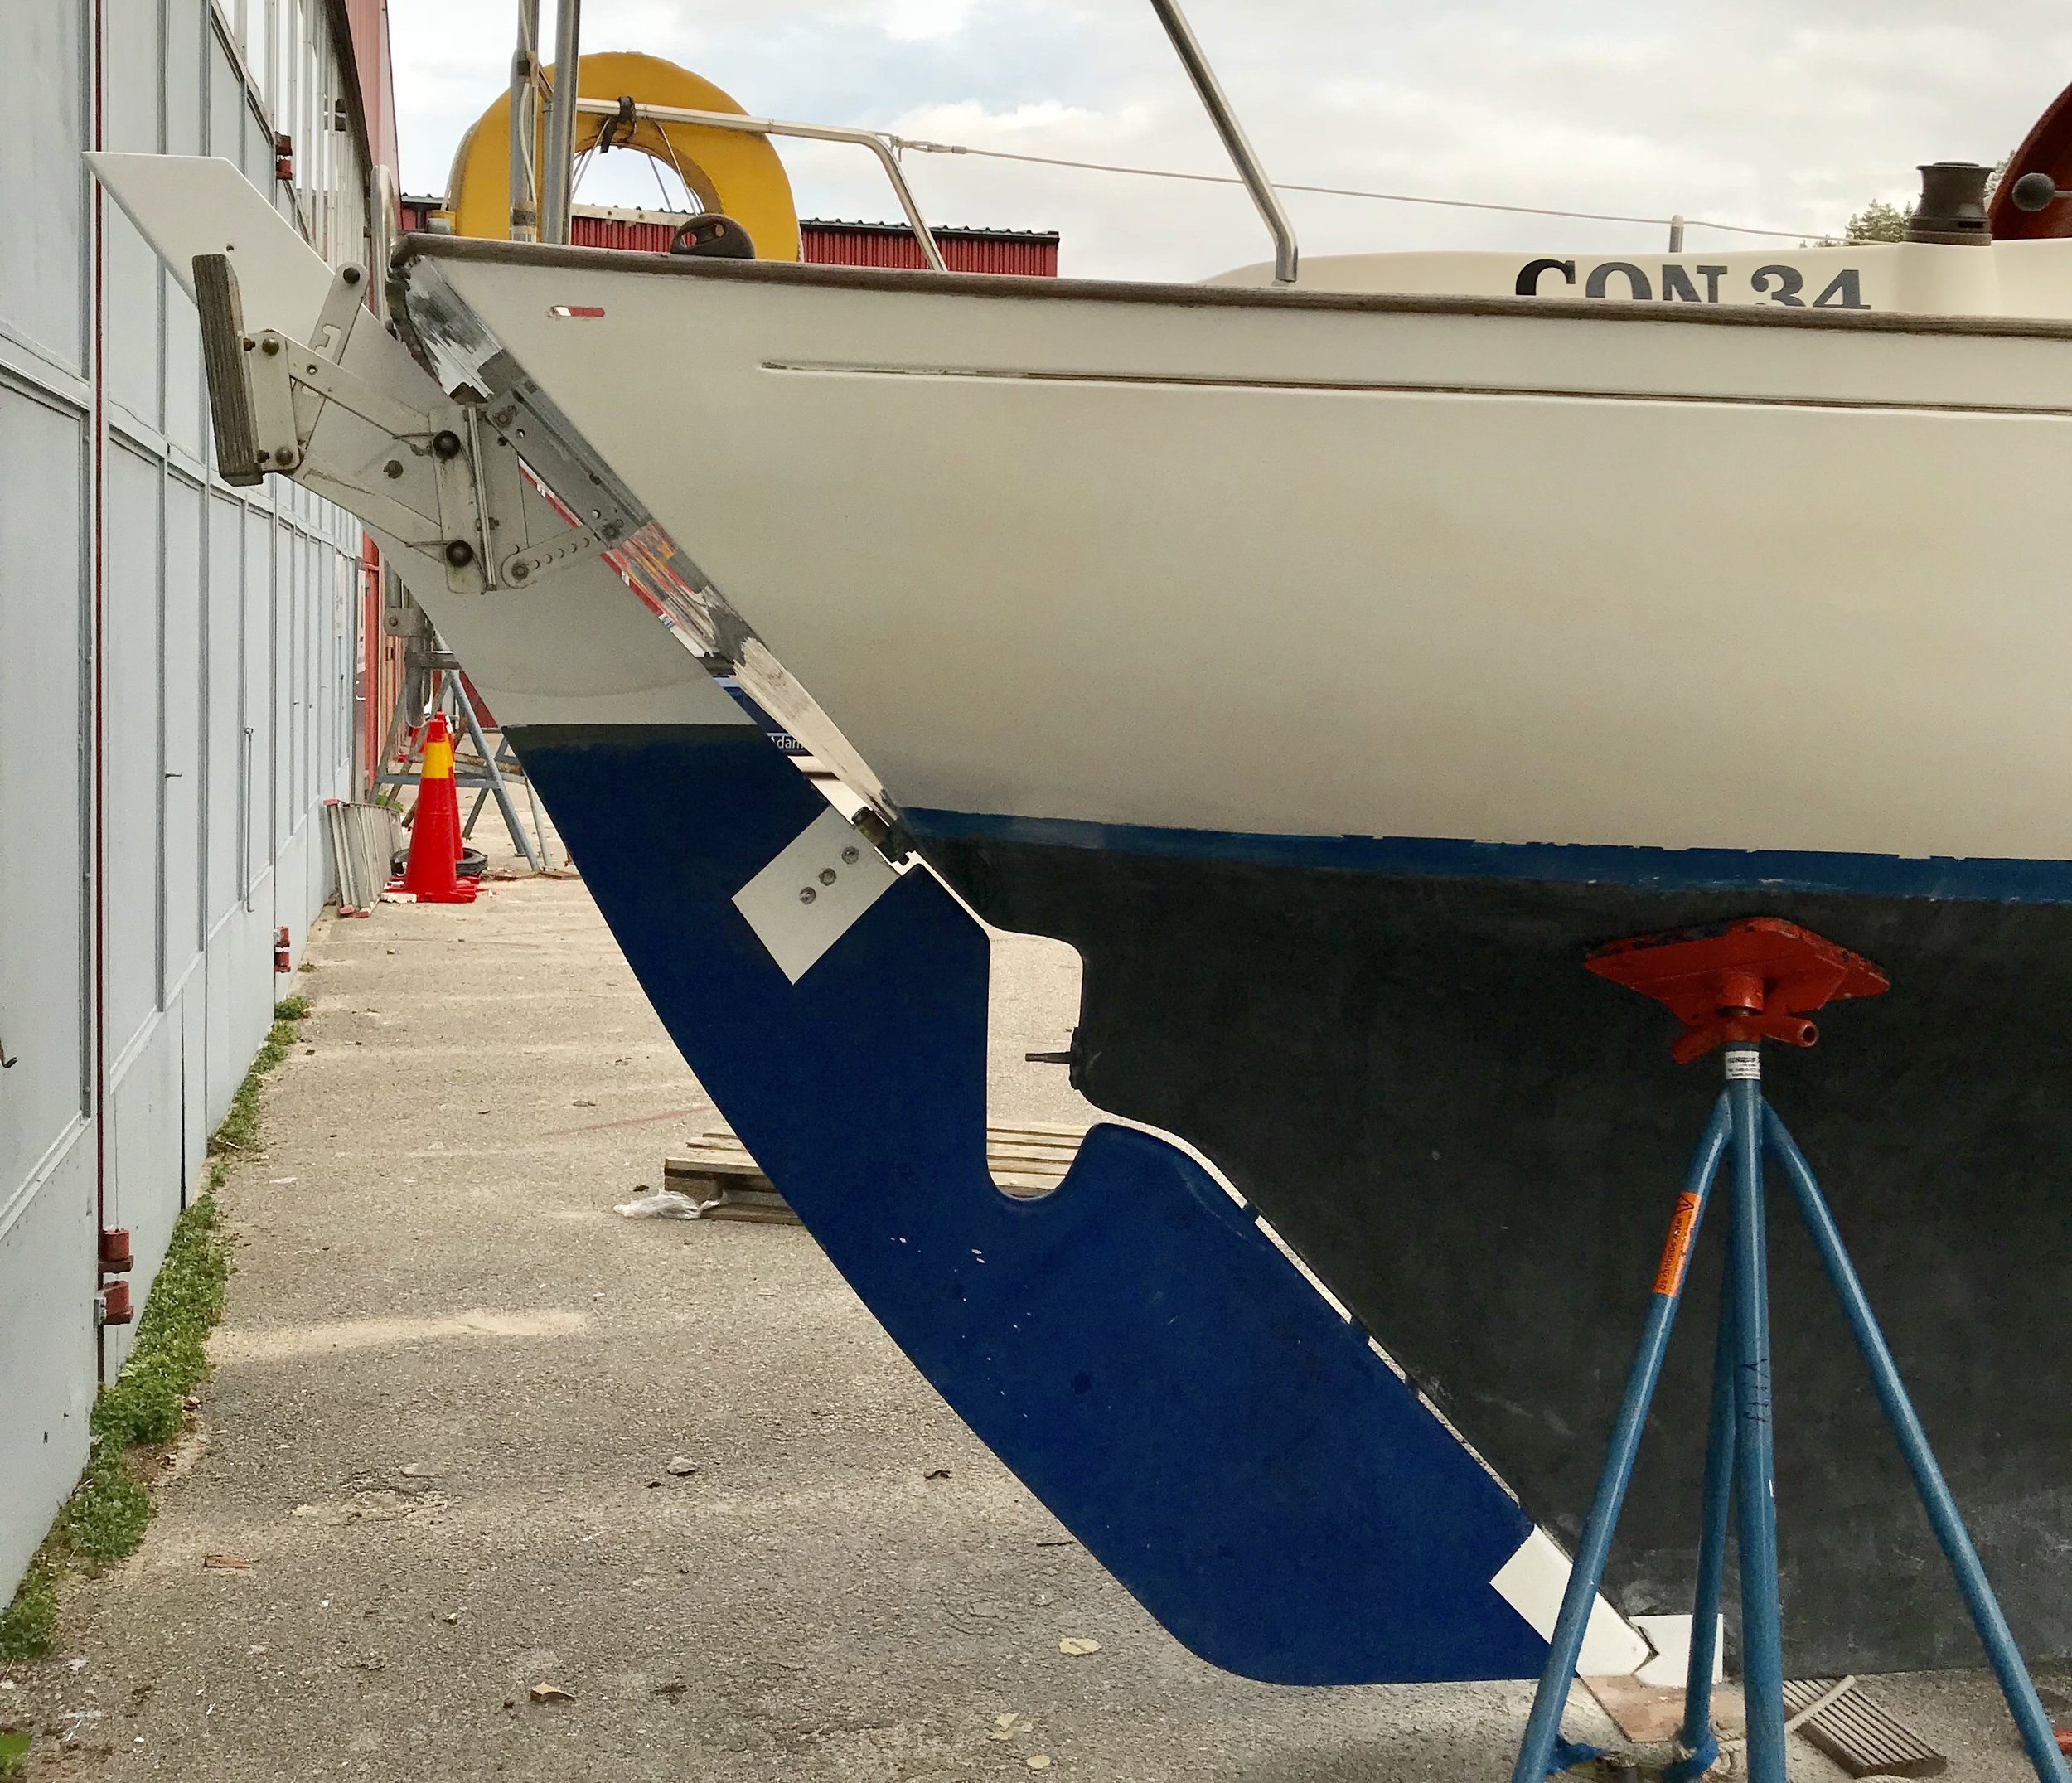 Rudder is back on and the boat looks complete again. Photo by: Daniel Novello